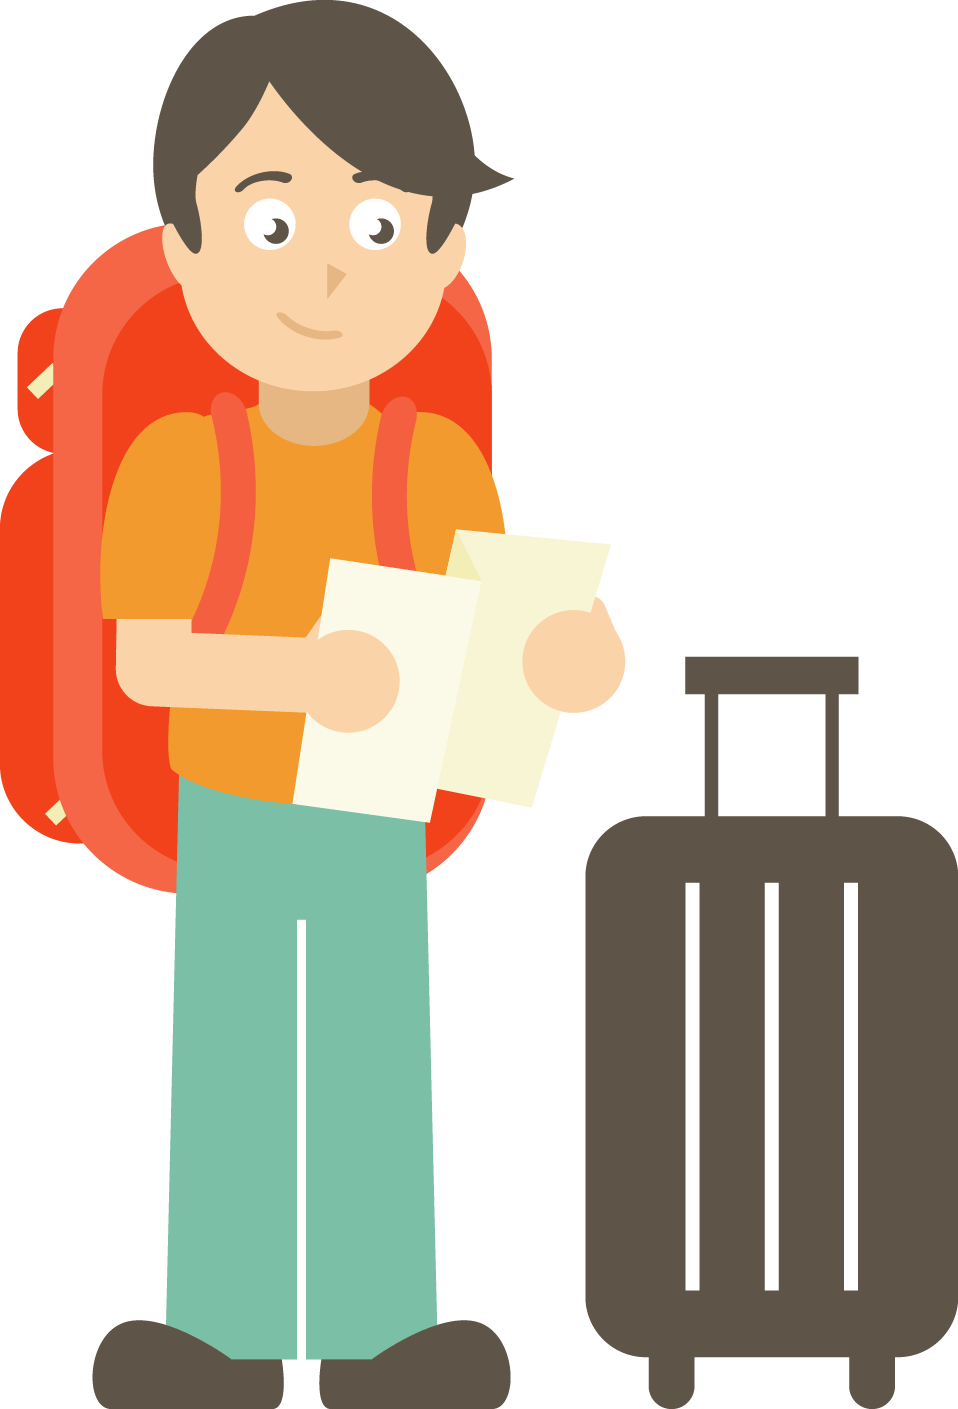 Luggage clipart boy. What kind of food